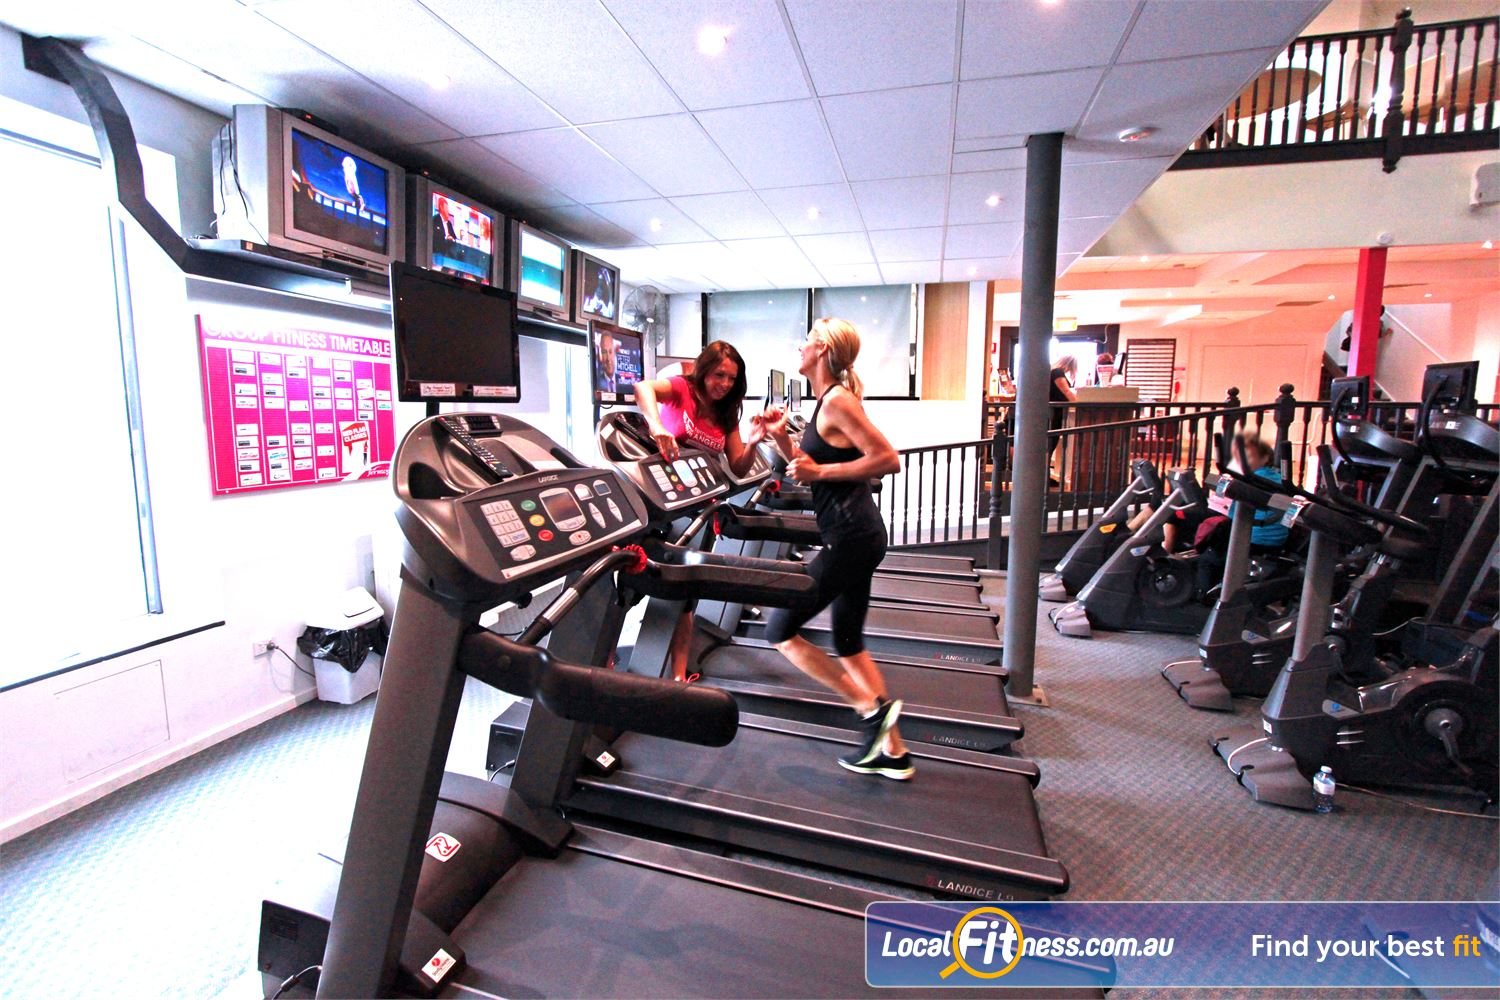 Fernwood Fitness Southland Cheltenham Treadmills, cycle bikes, cross-trainers and more.